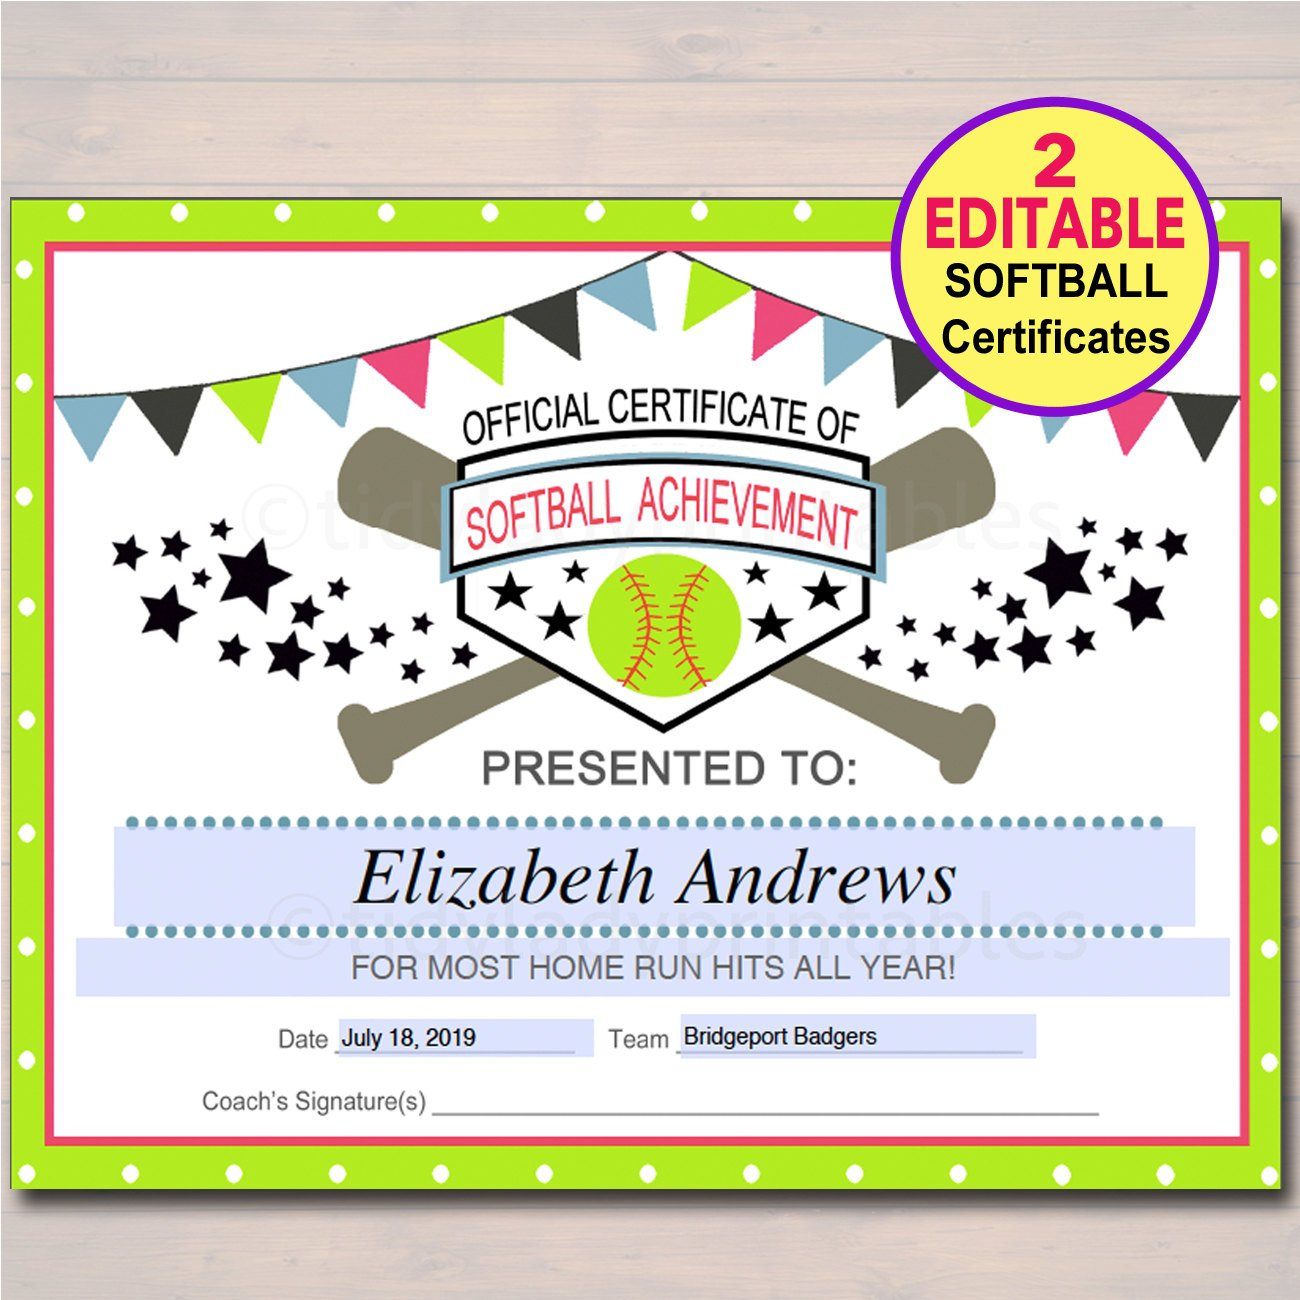 Editable Softball Certificates Instant Download Softball | Etsy - Free Printable Softball Award Certificates